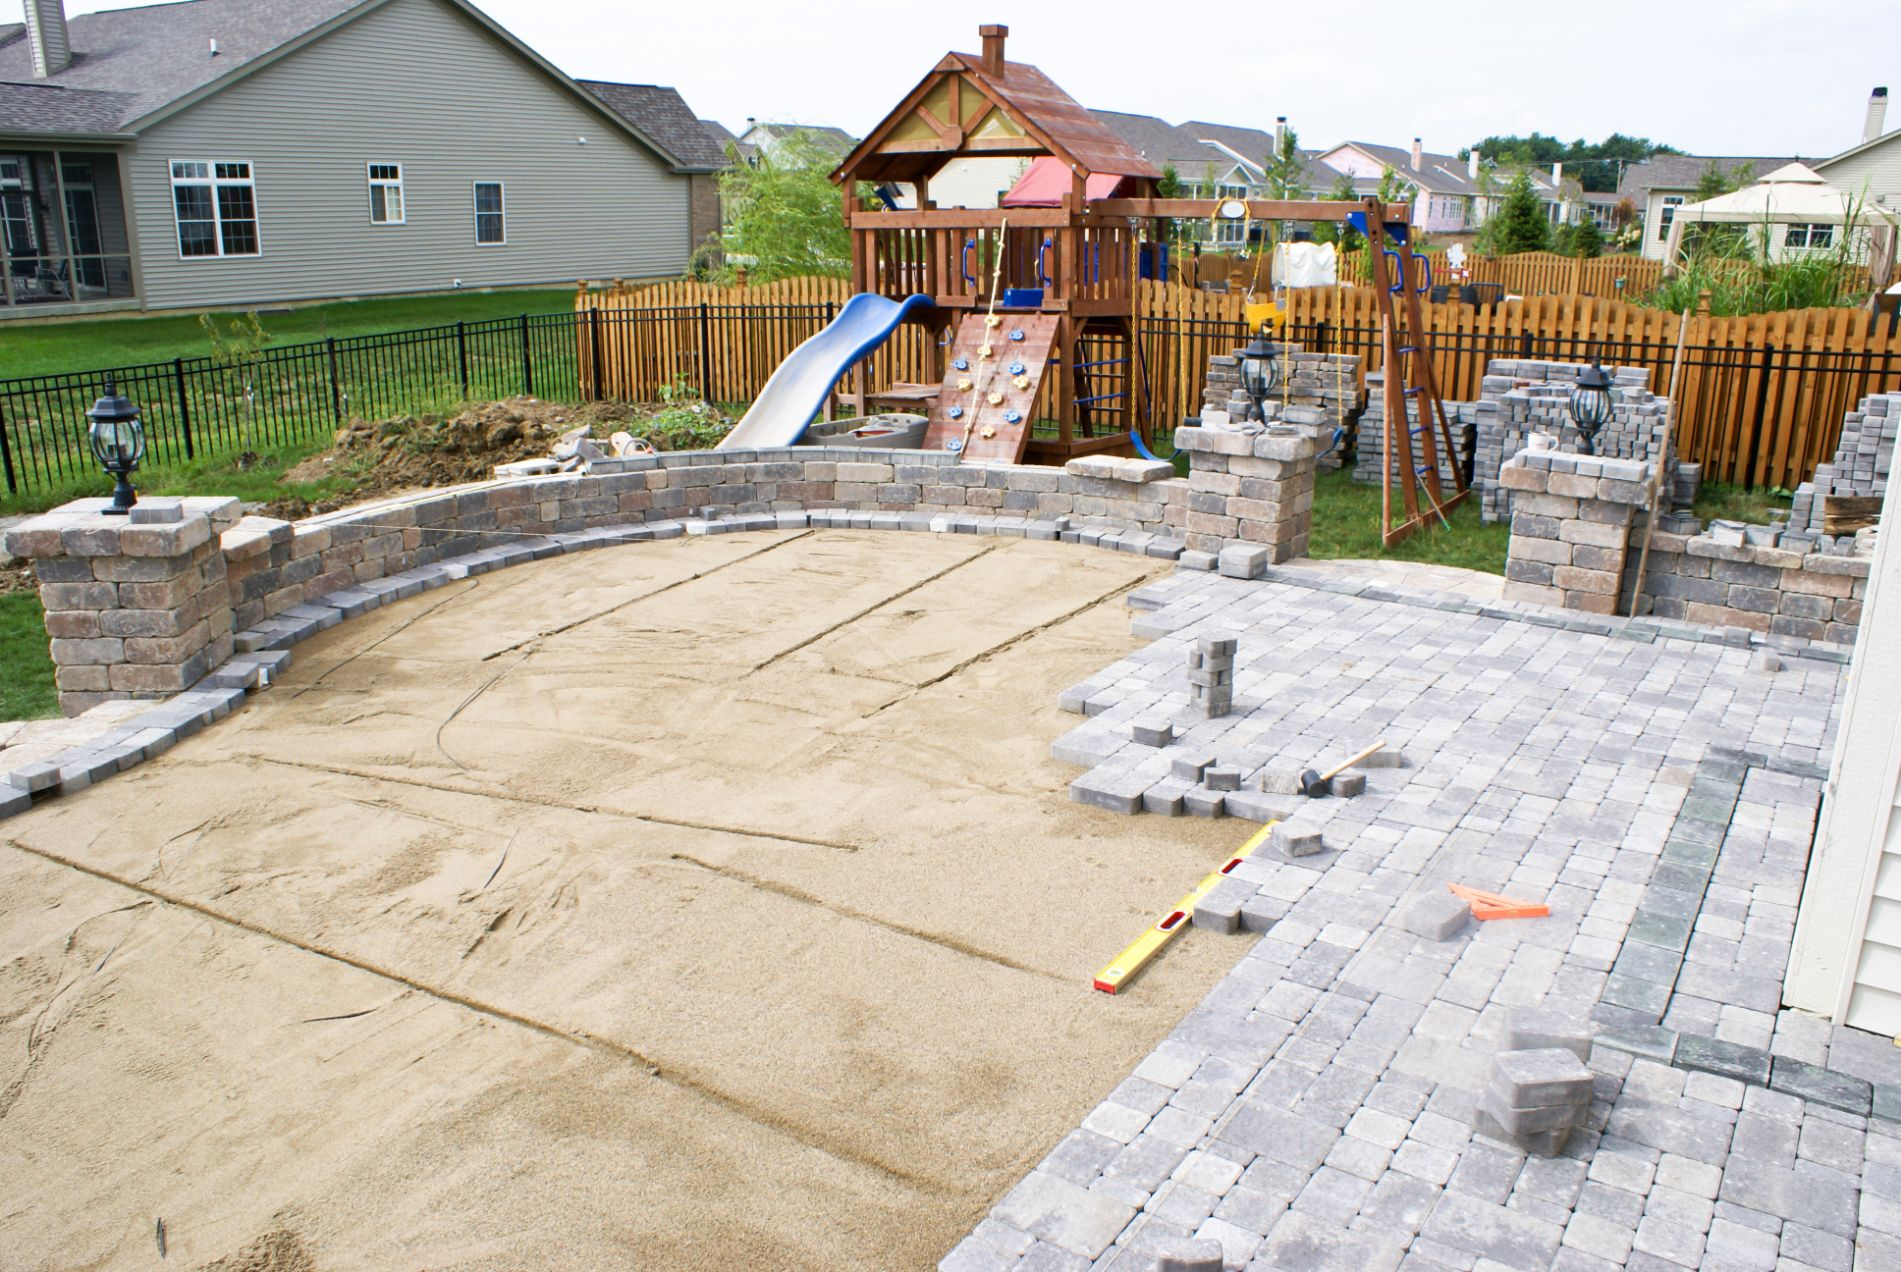 Best Contractors in San Jose for Paver Repair and Refinishing.